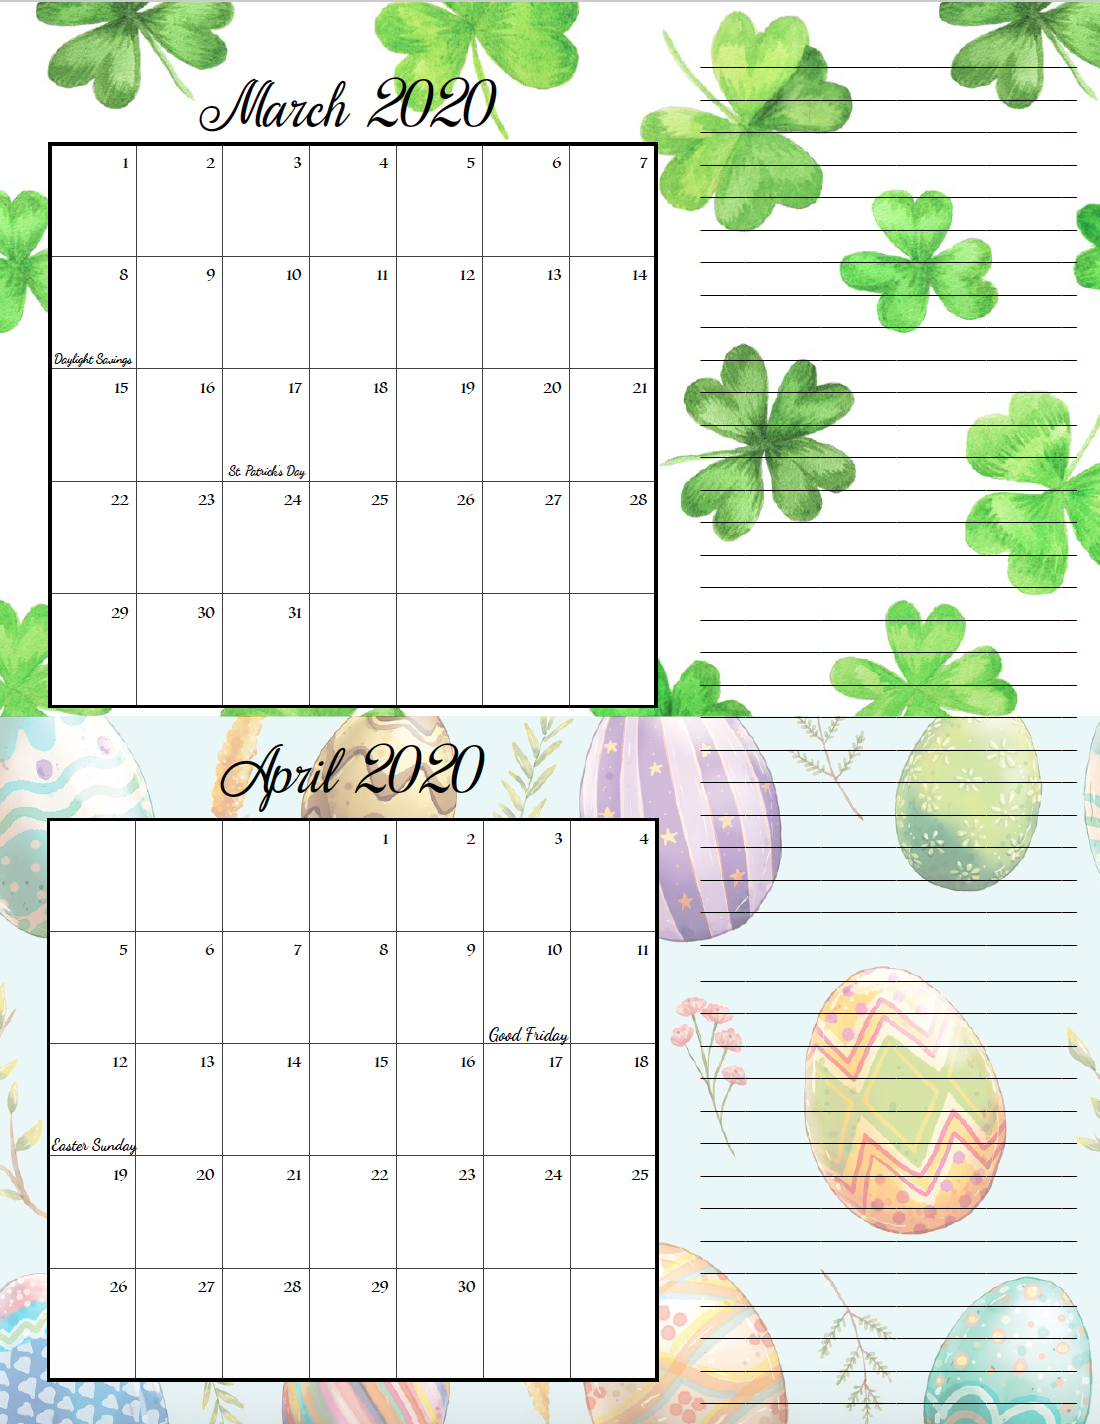 Holiday theme March/April bimonthly calendar.